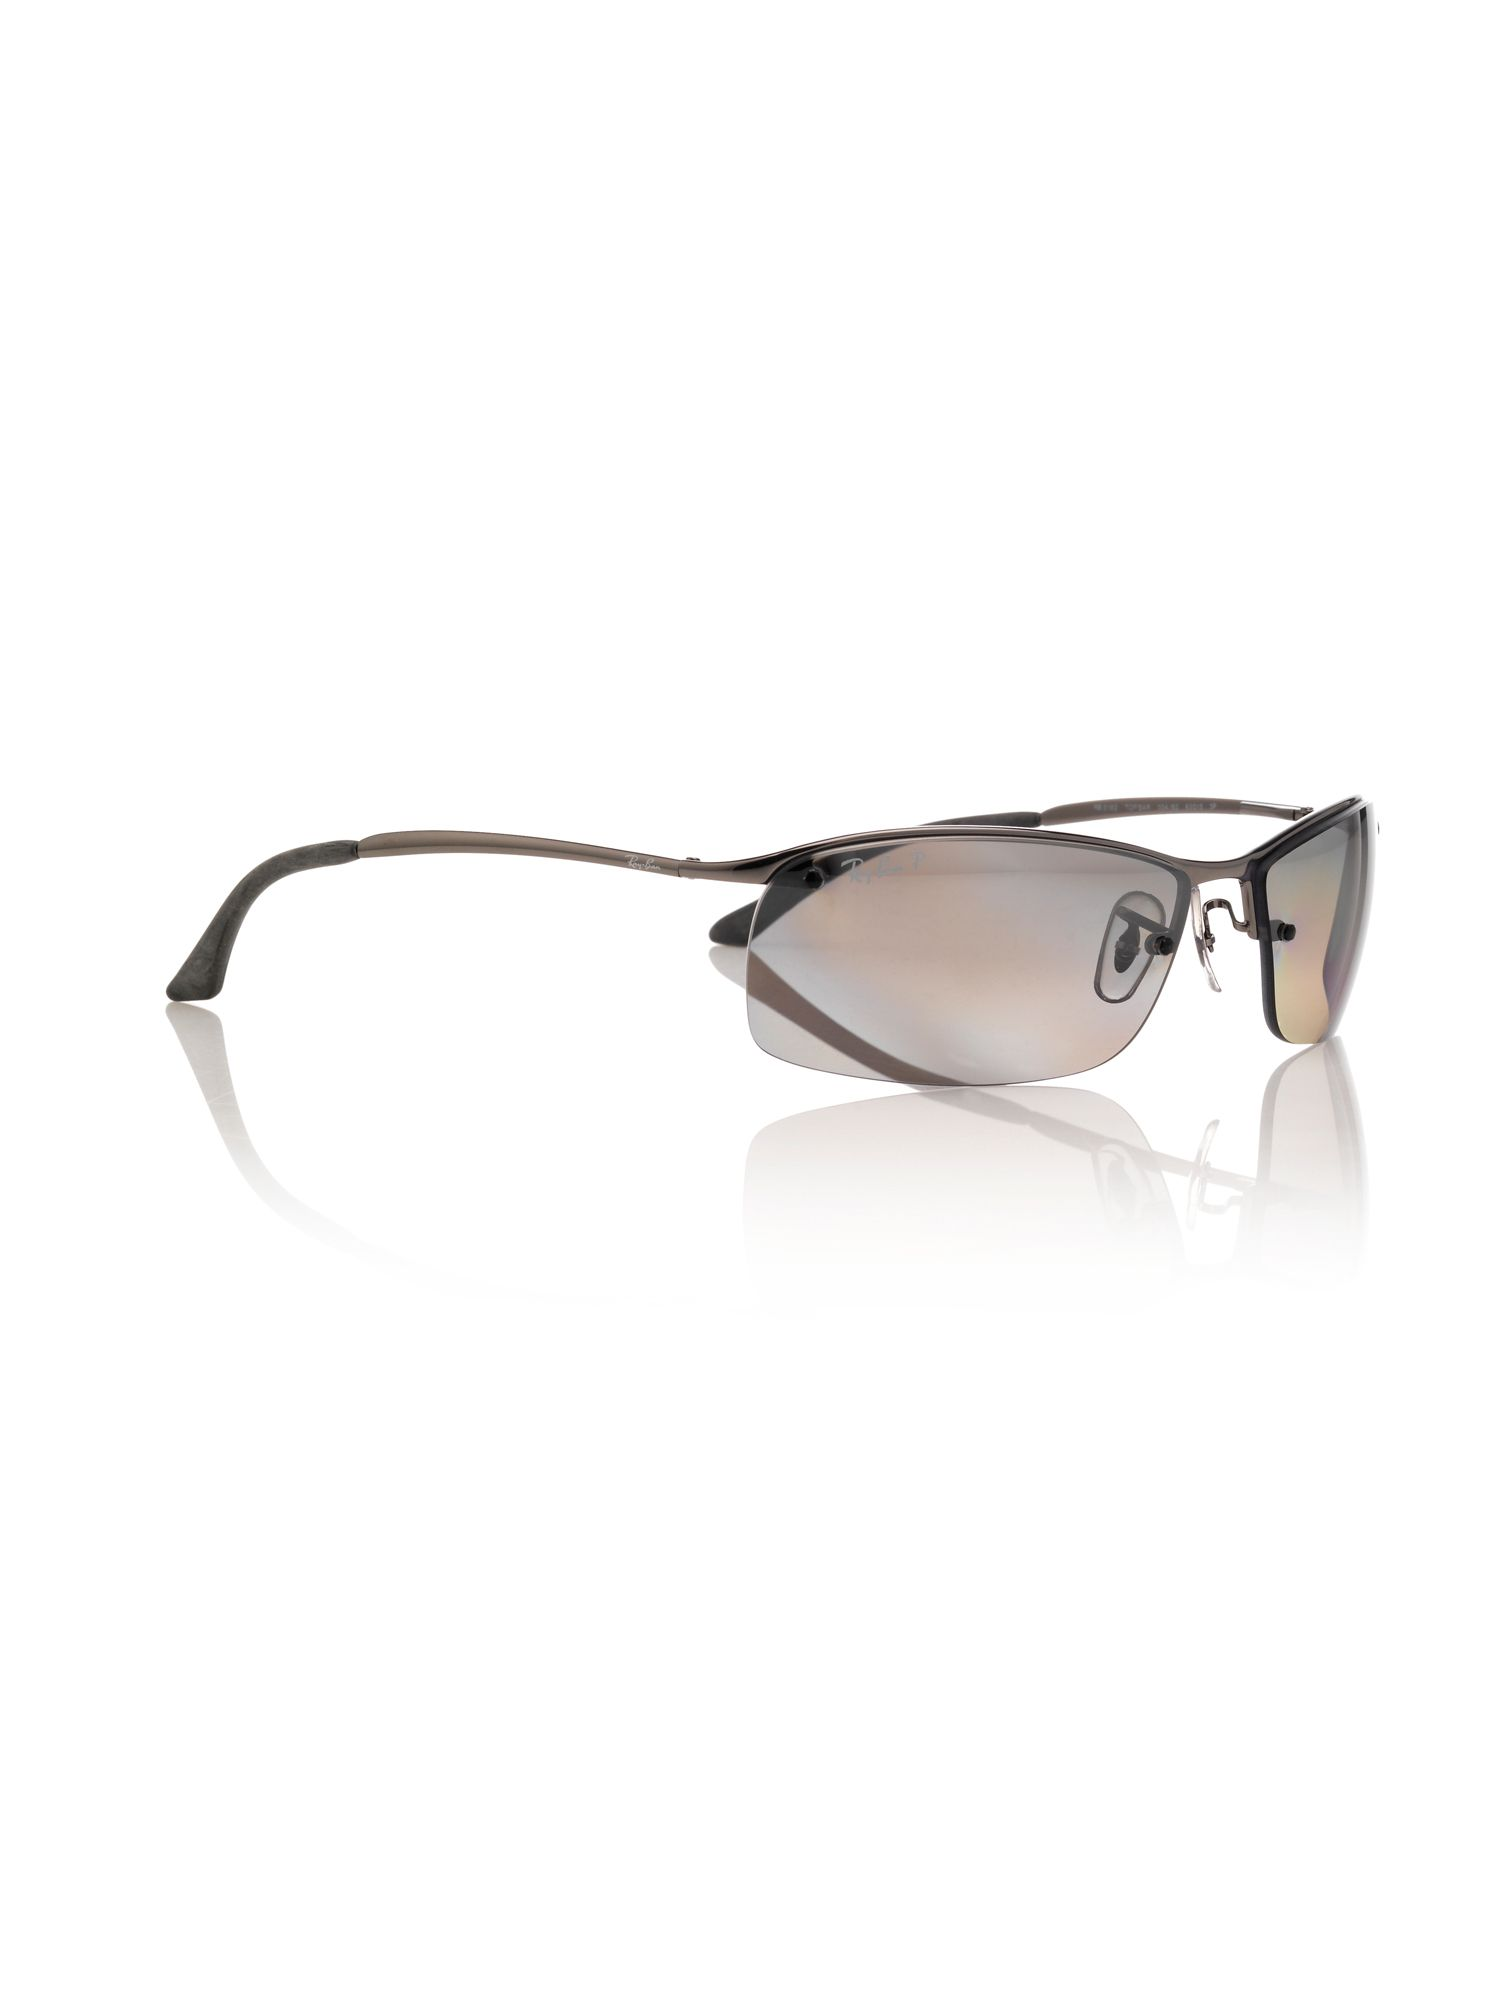 Mens RB3183 Rectangle Sunglasses